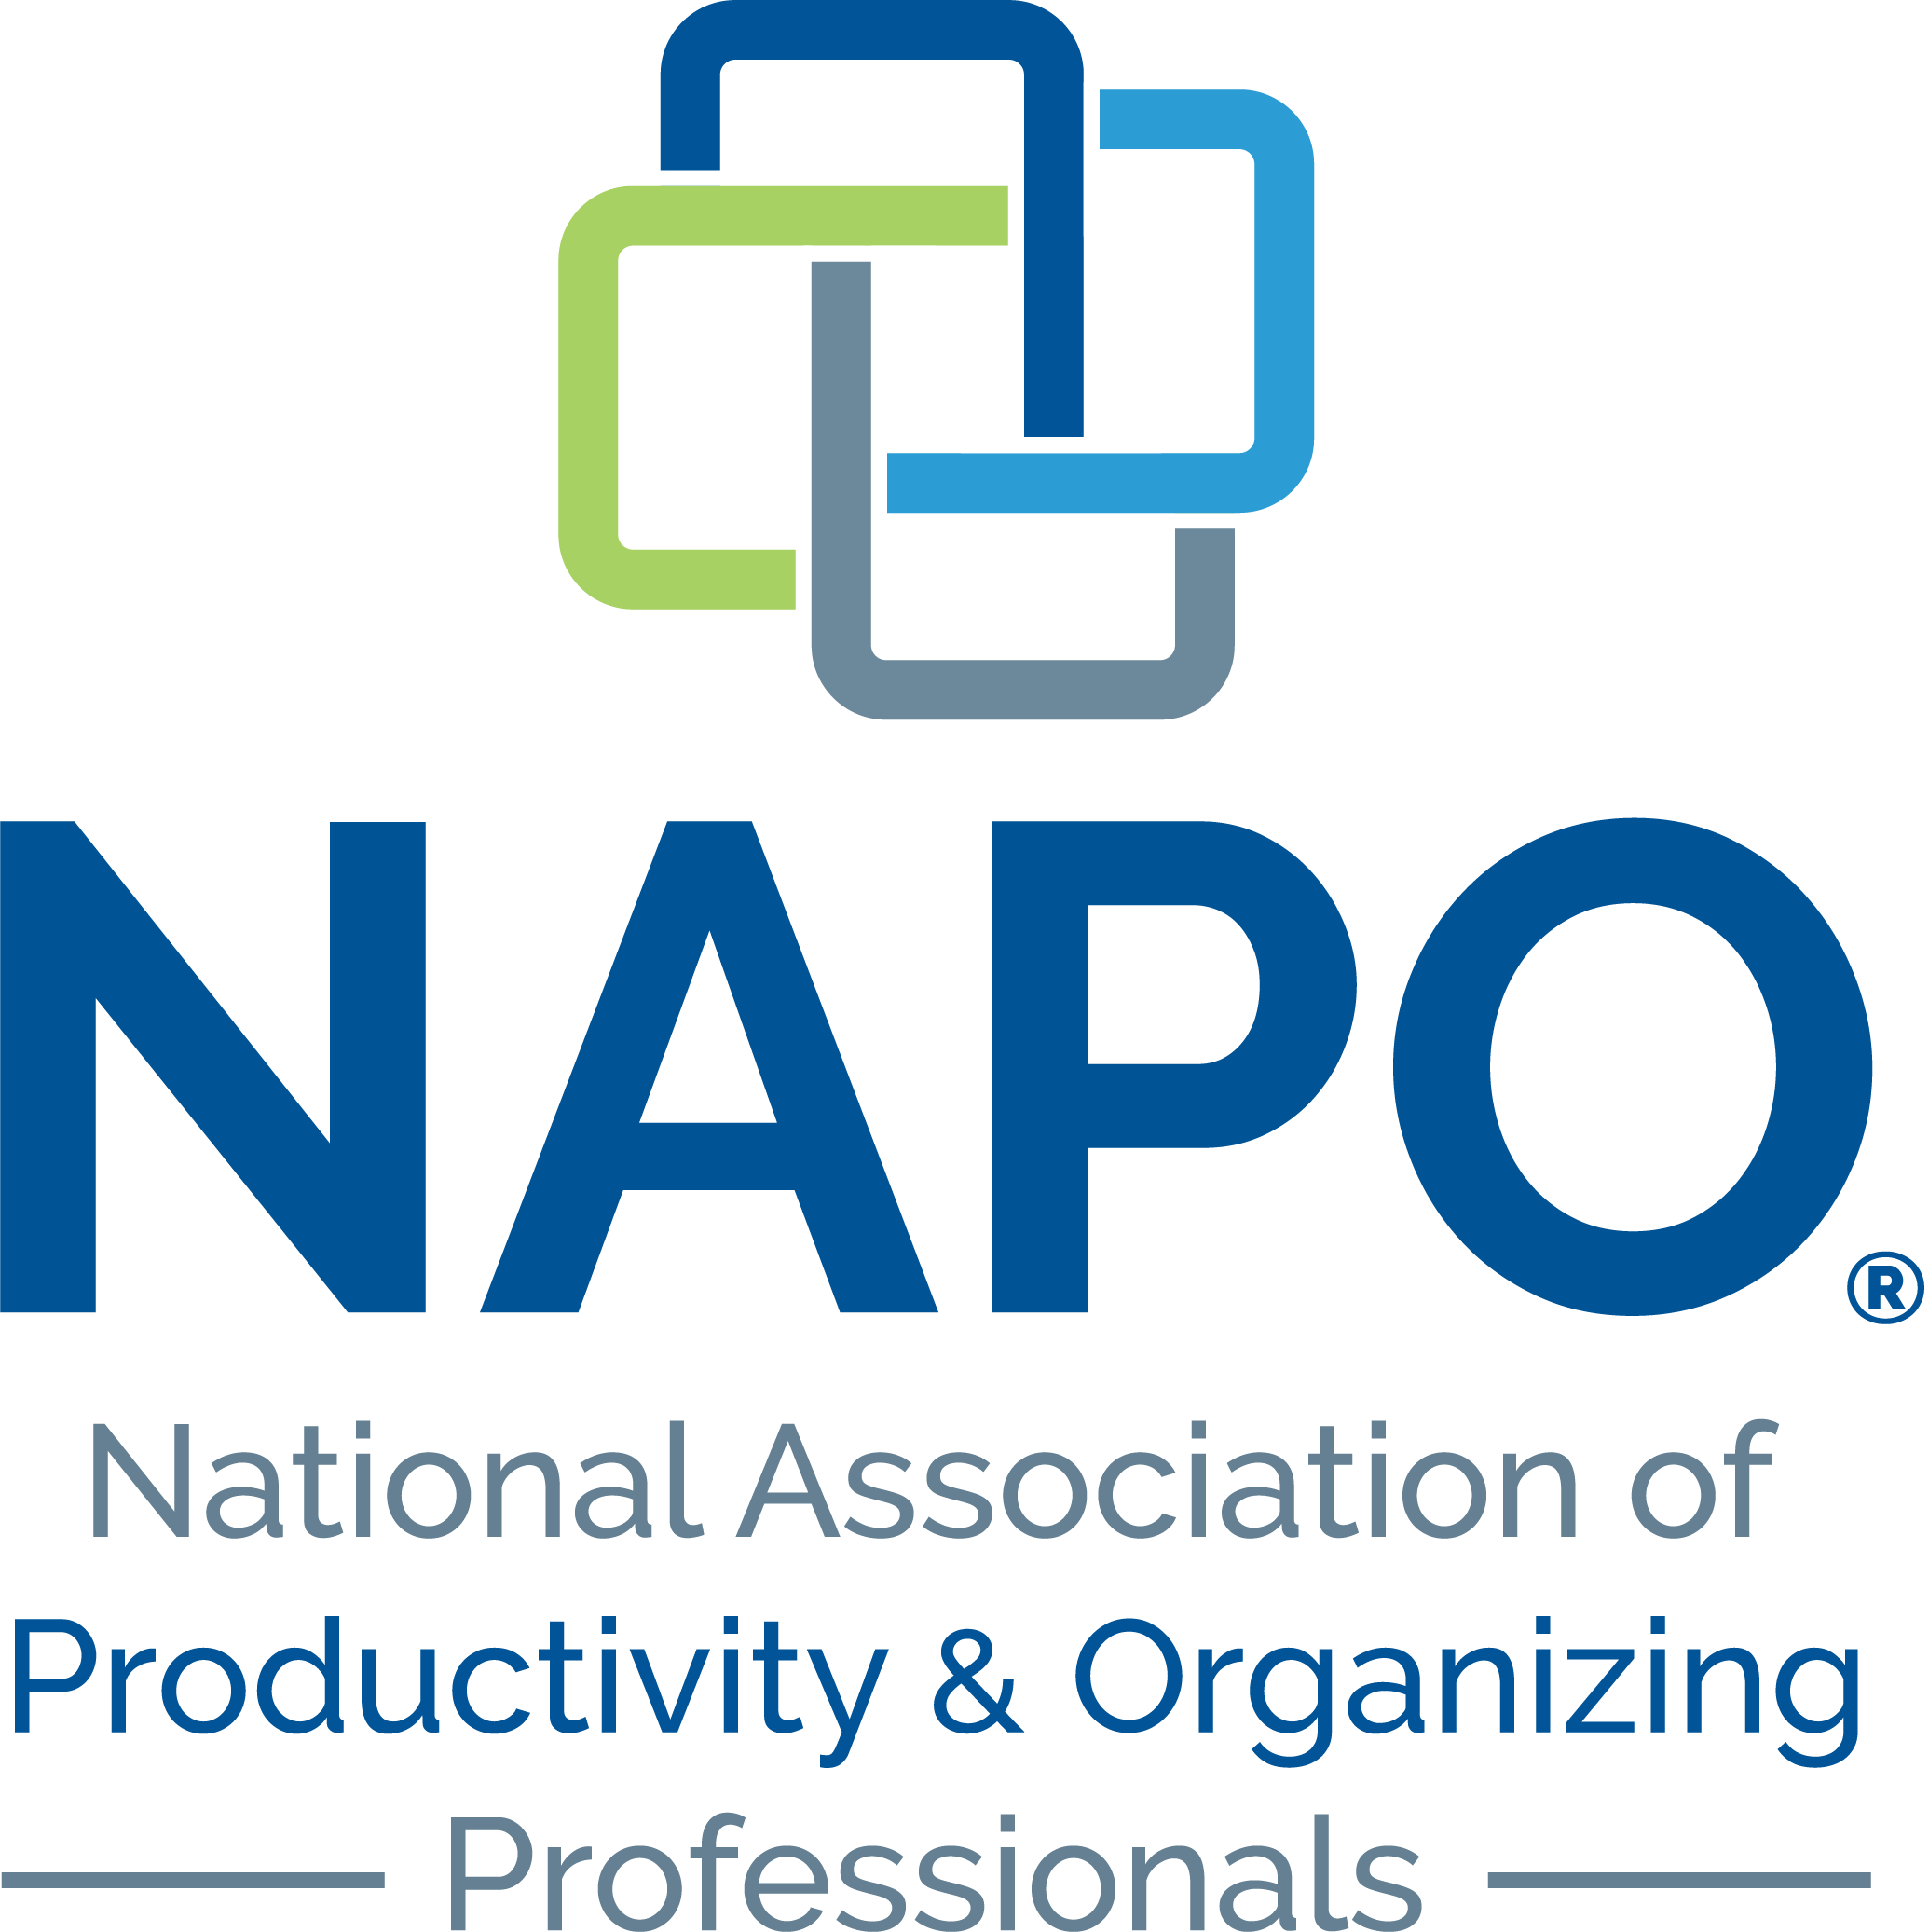 NAPO-logo1-vertical-stacked_R.png